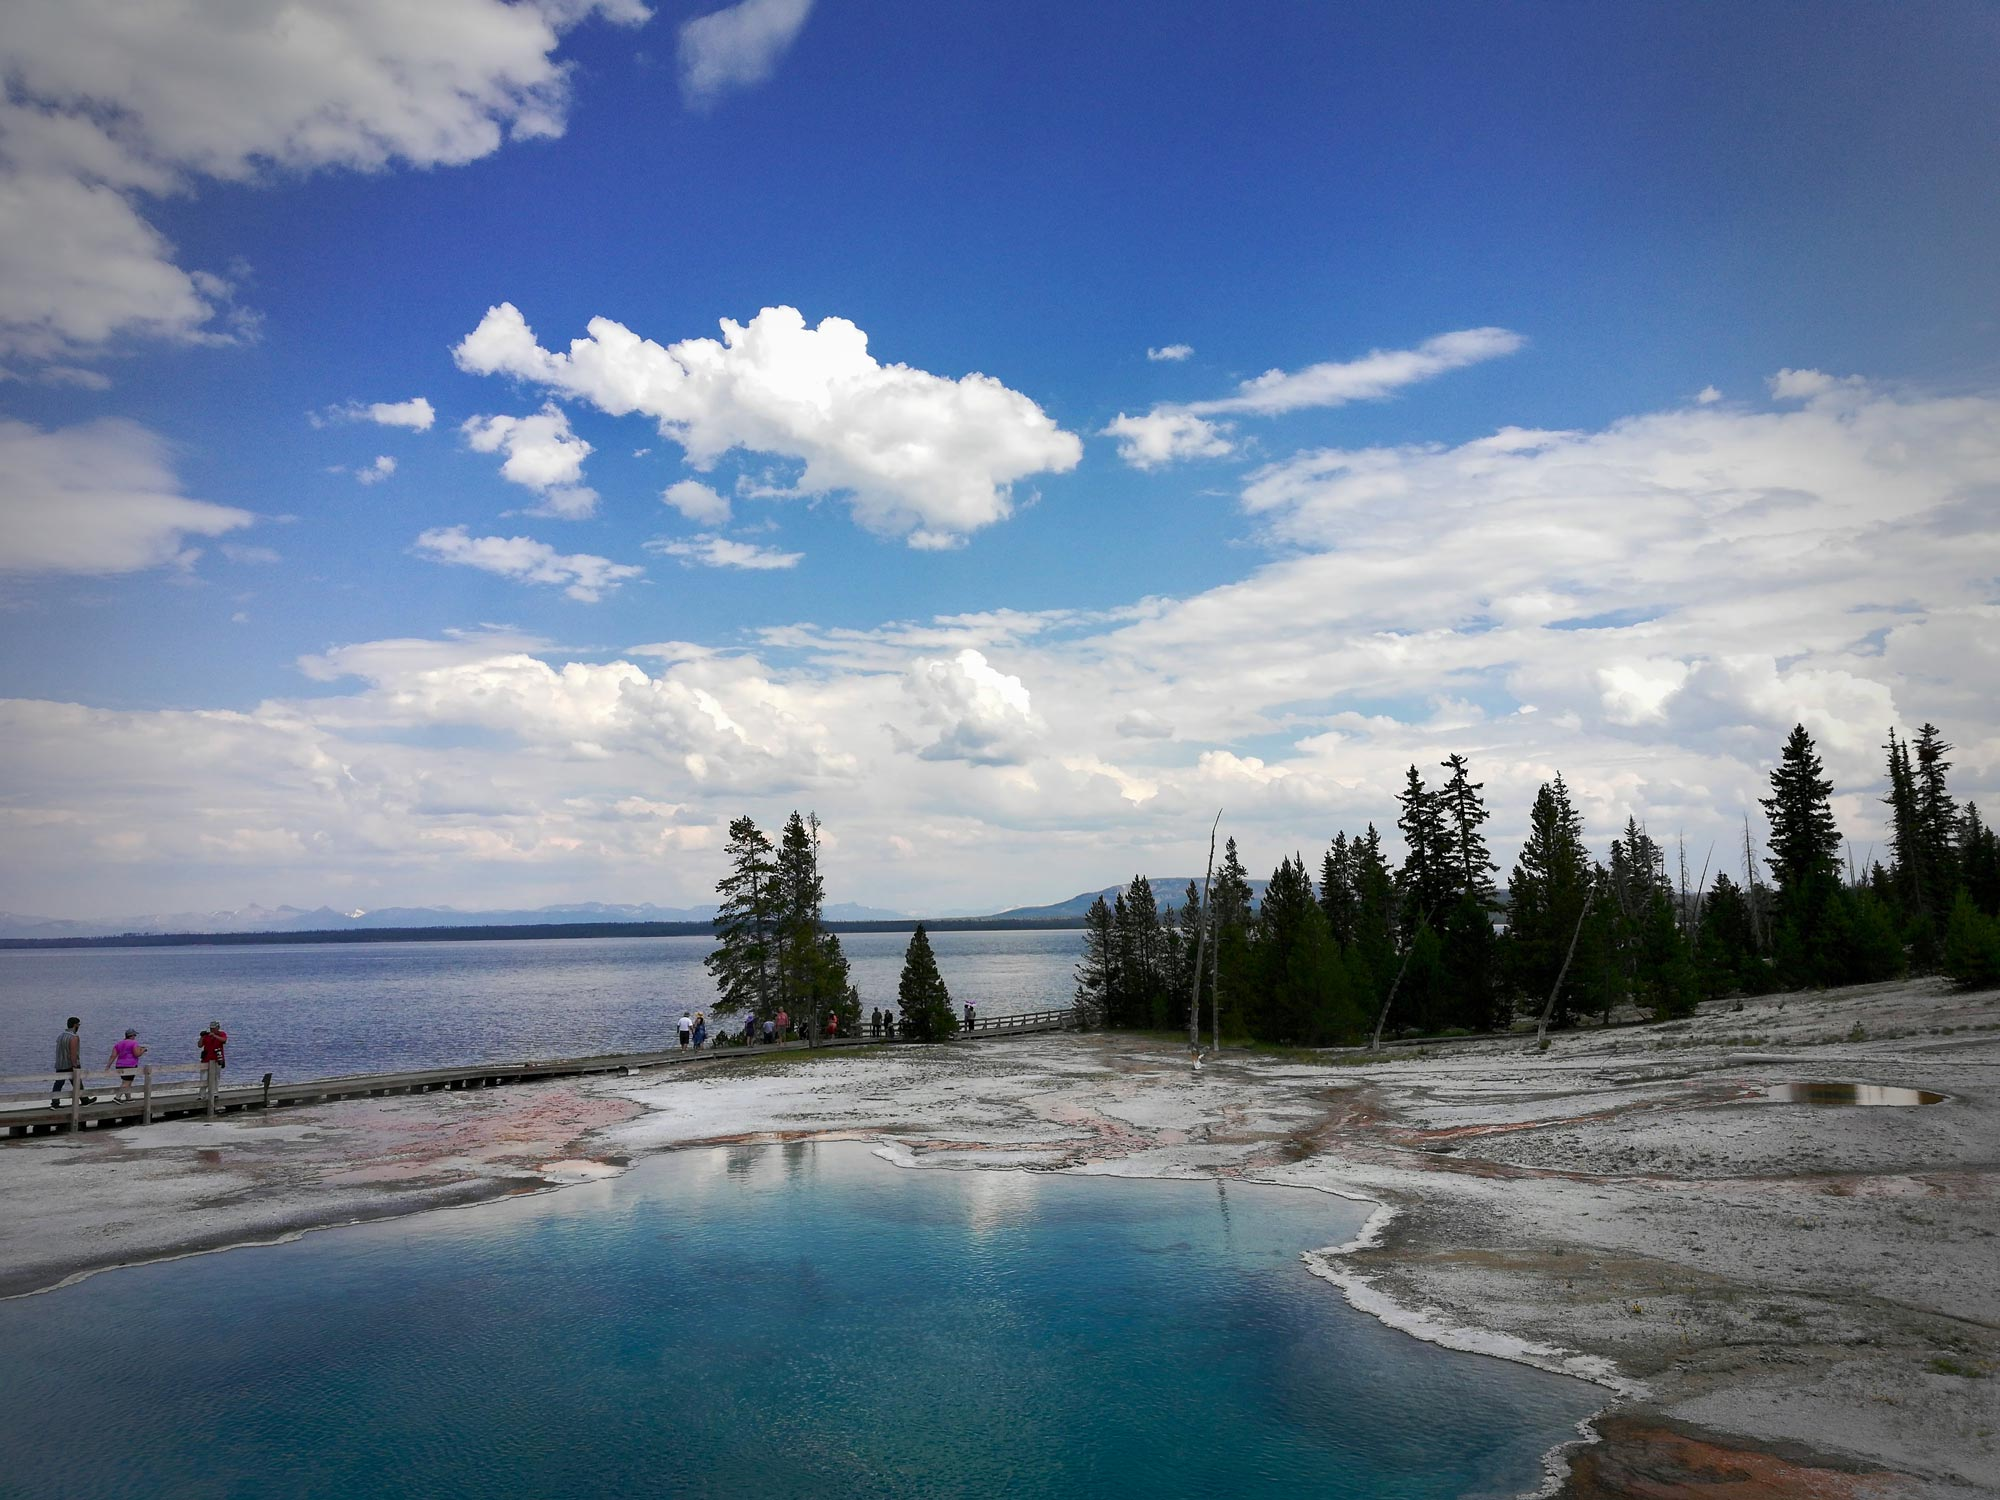 Abyss pool at west thumb geyser basin with Yellowstone Lake in Yellowstone National Park